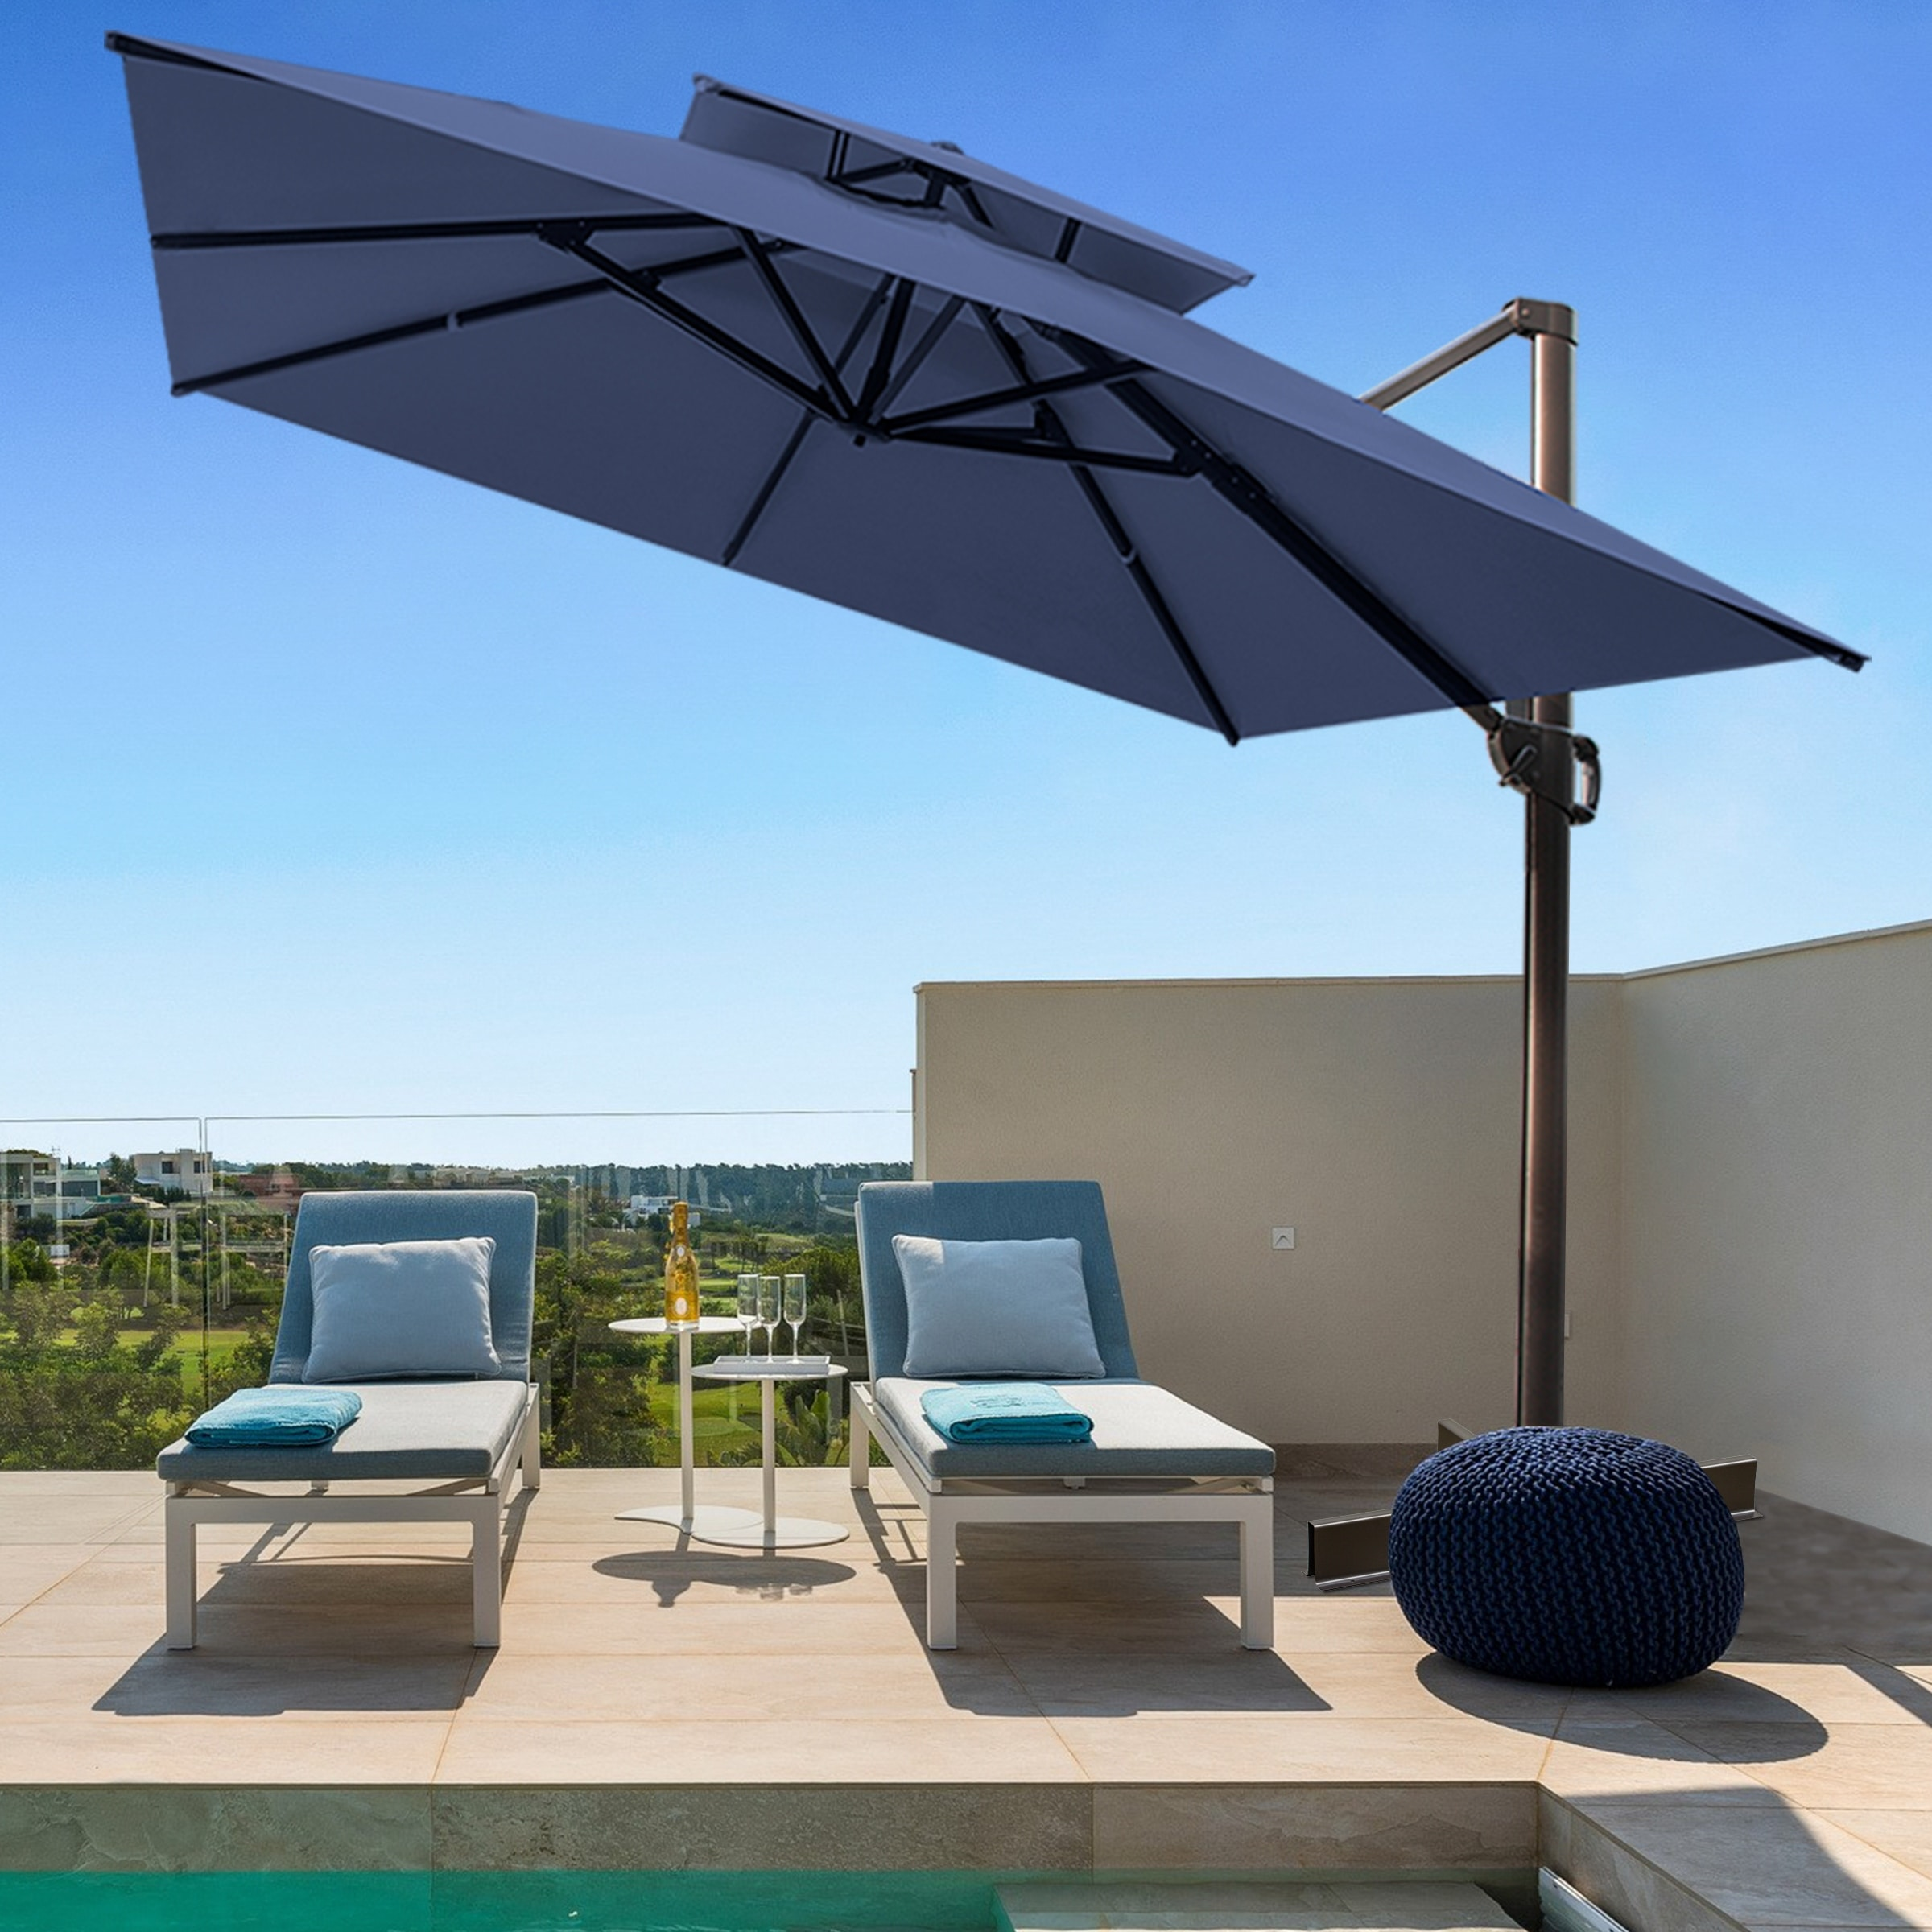 crestlive products outdoor 10 foot double top square offset umbrella